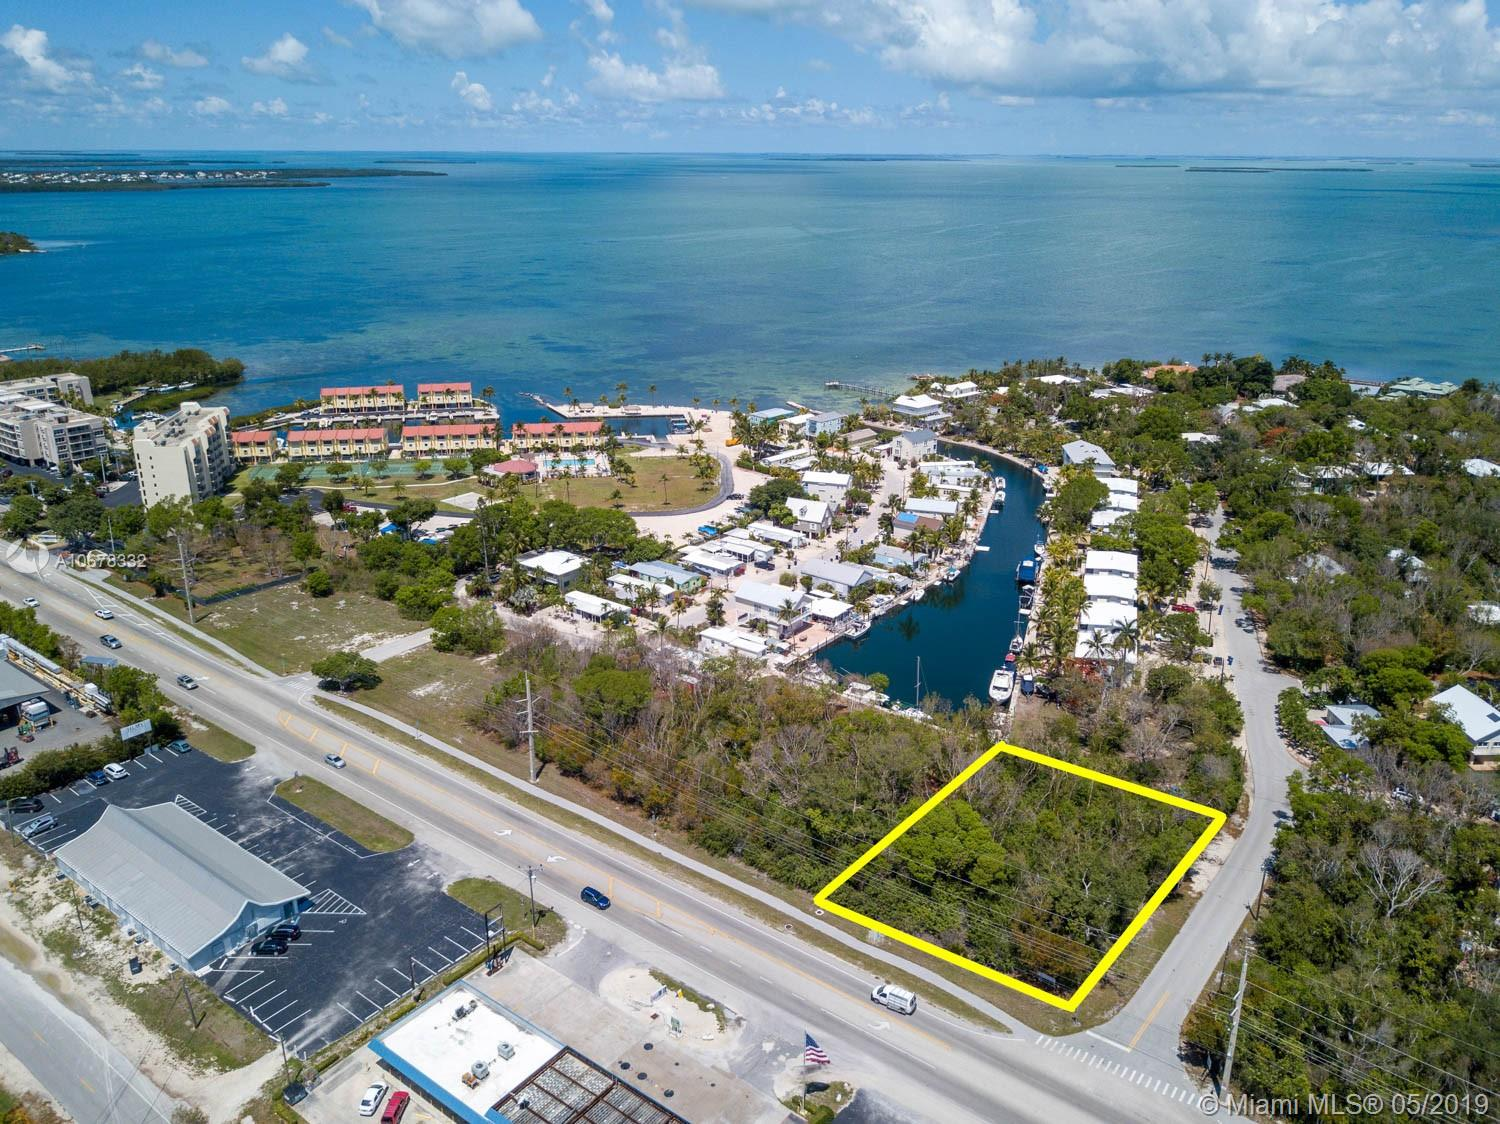 MM 88.64 Overseas Hiwy & Monroe Dr, Other City - Keys/Islands/Caribbean, FL 33070